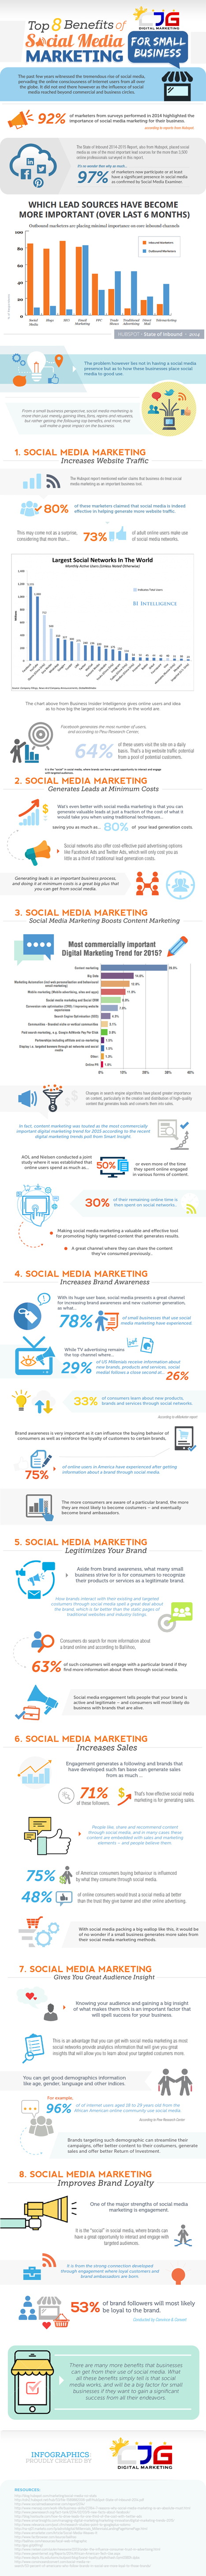 Top 8 Benefits of Social Media Marketing for Small Business #Infographic | MarketingHits | Scoop.it